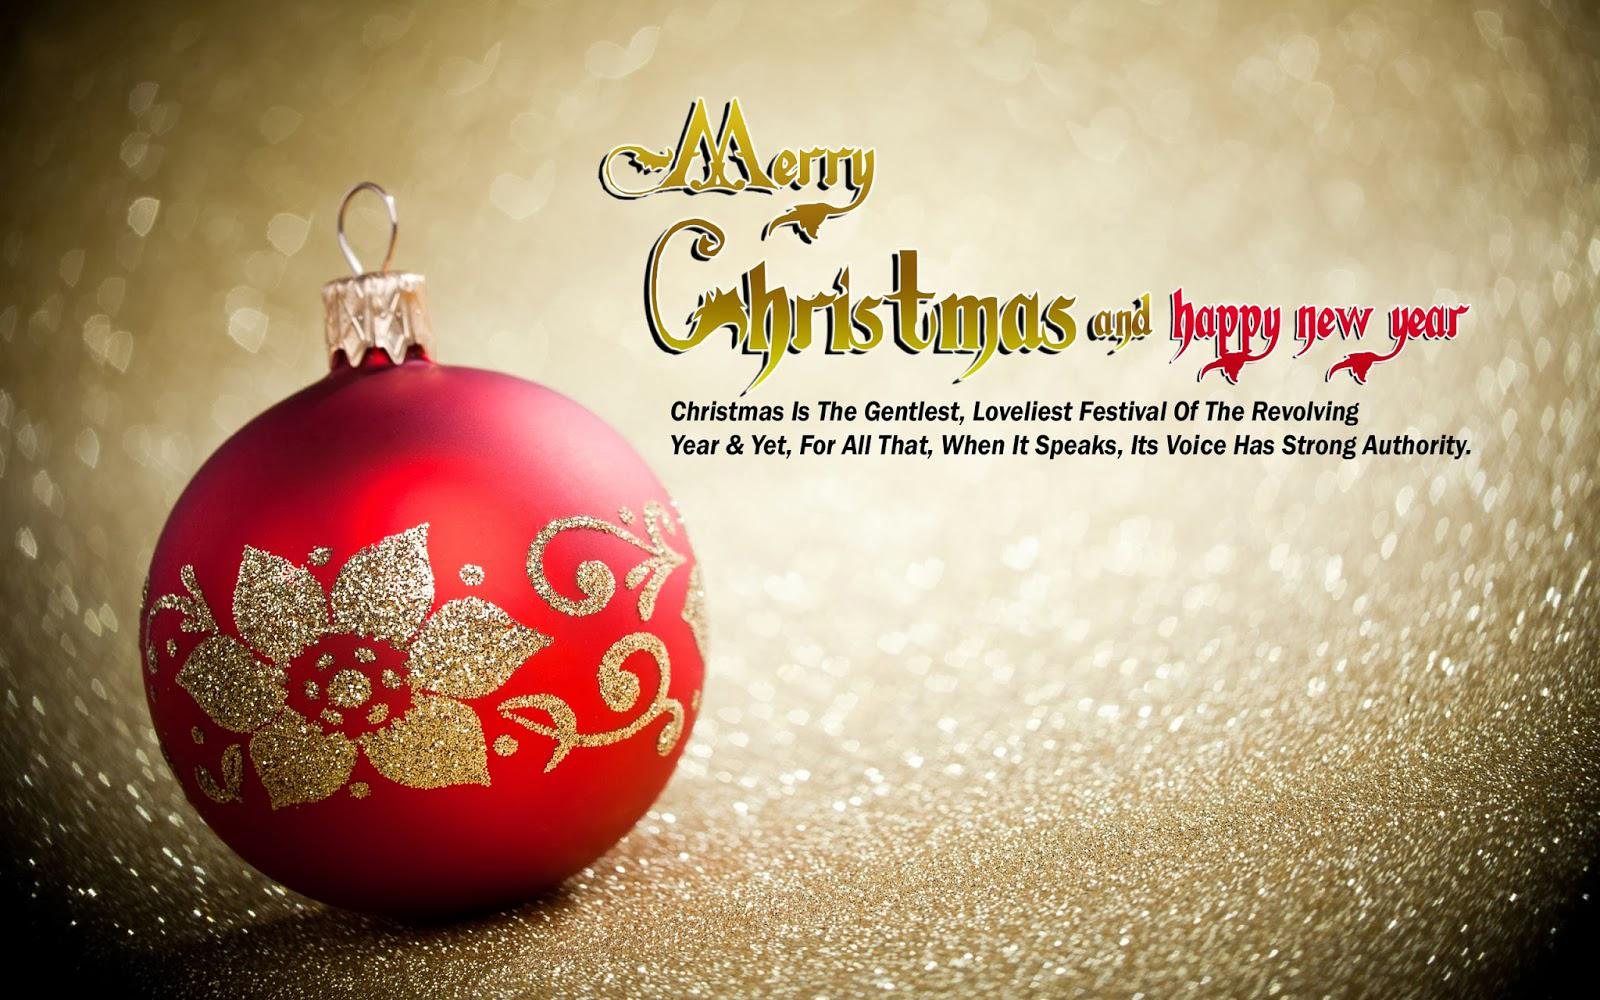 New Year 2016 Wallpapers Wishes Best Merry Christmas Happy New